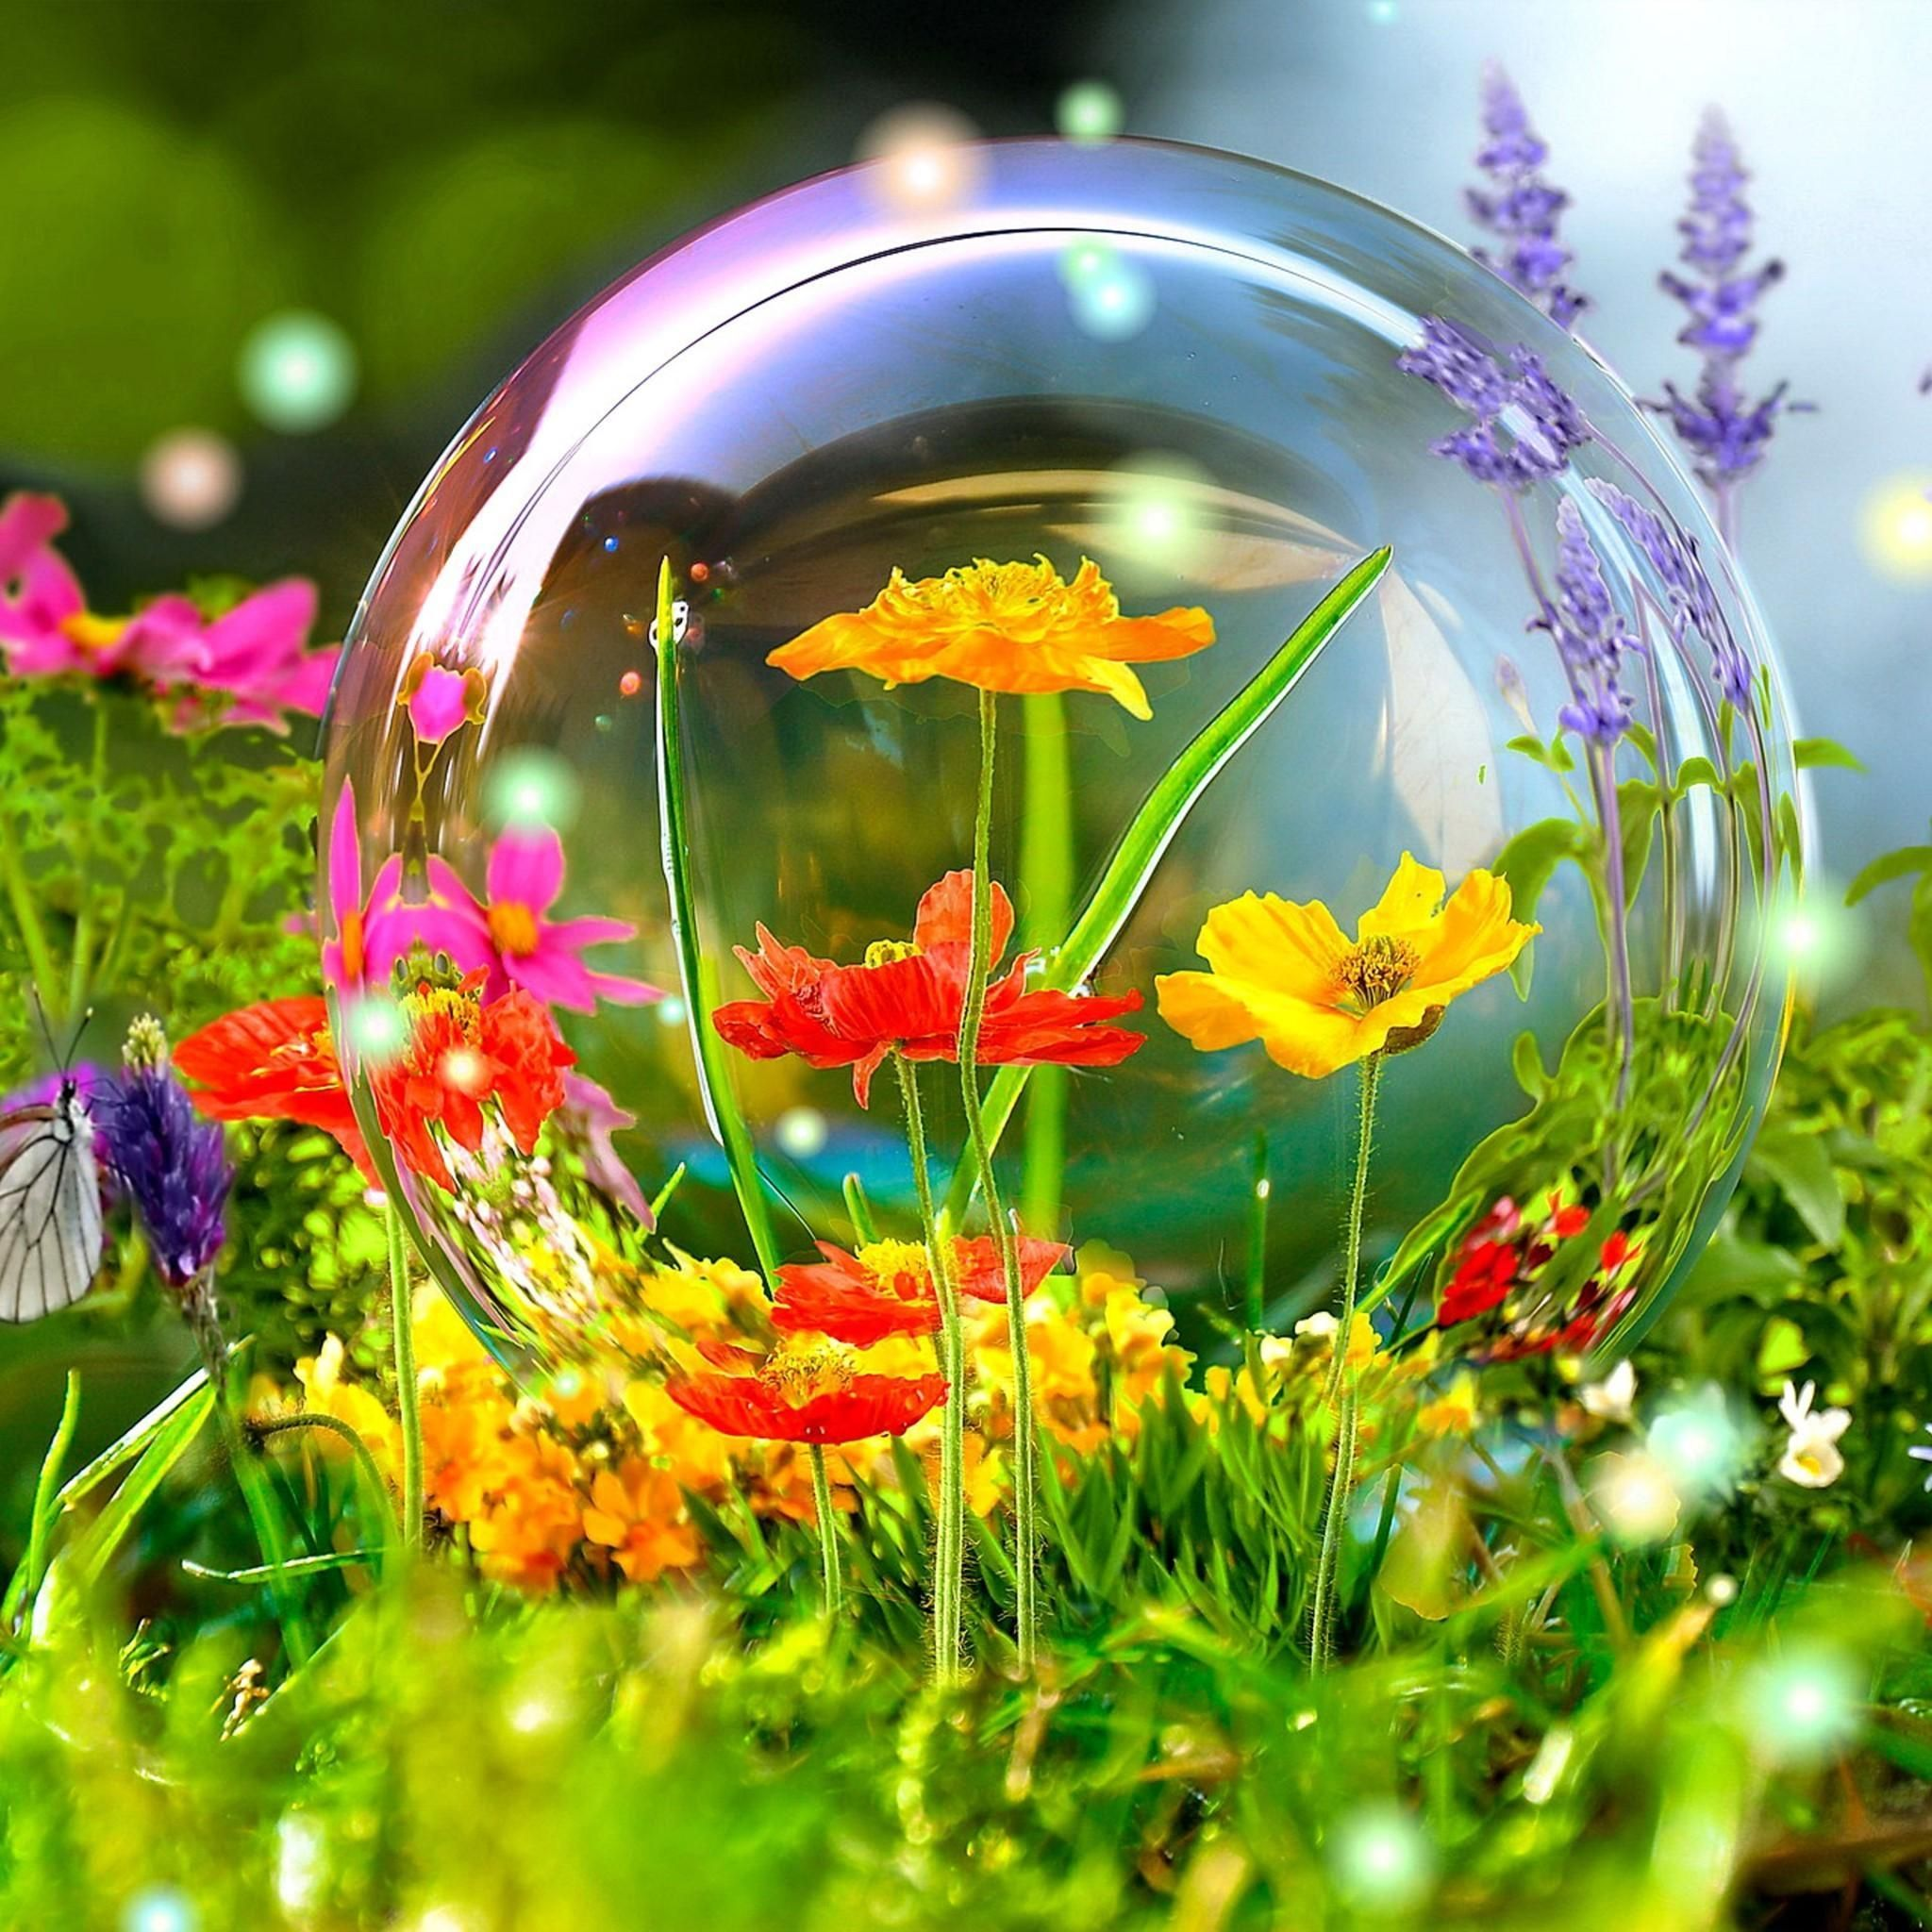 Nature Images Hd Download Free